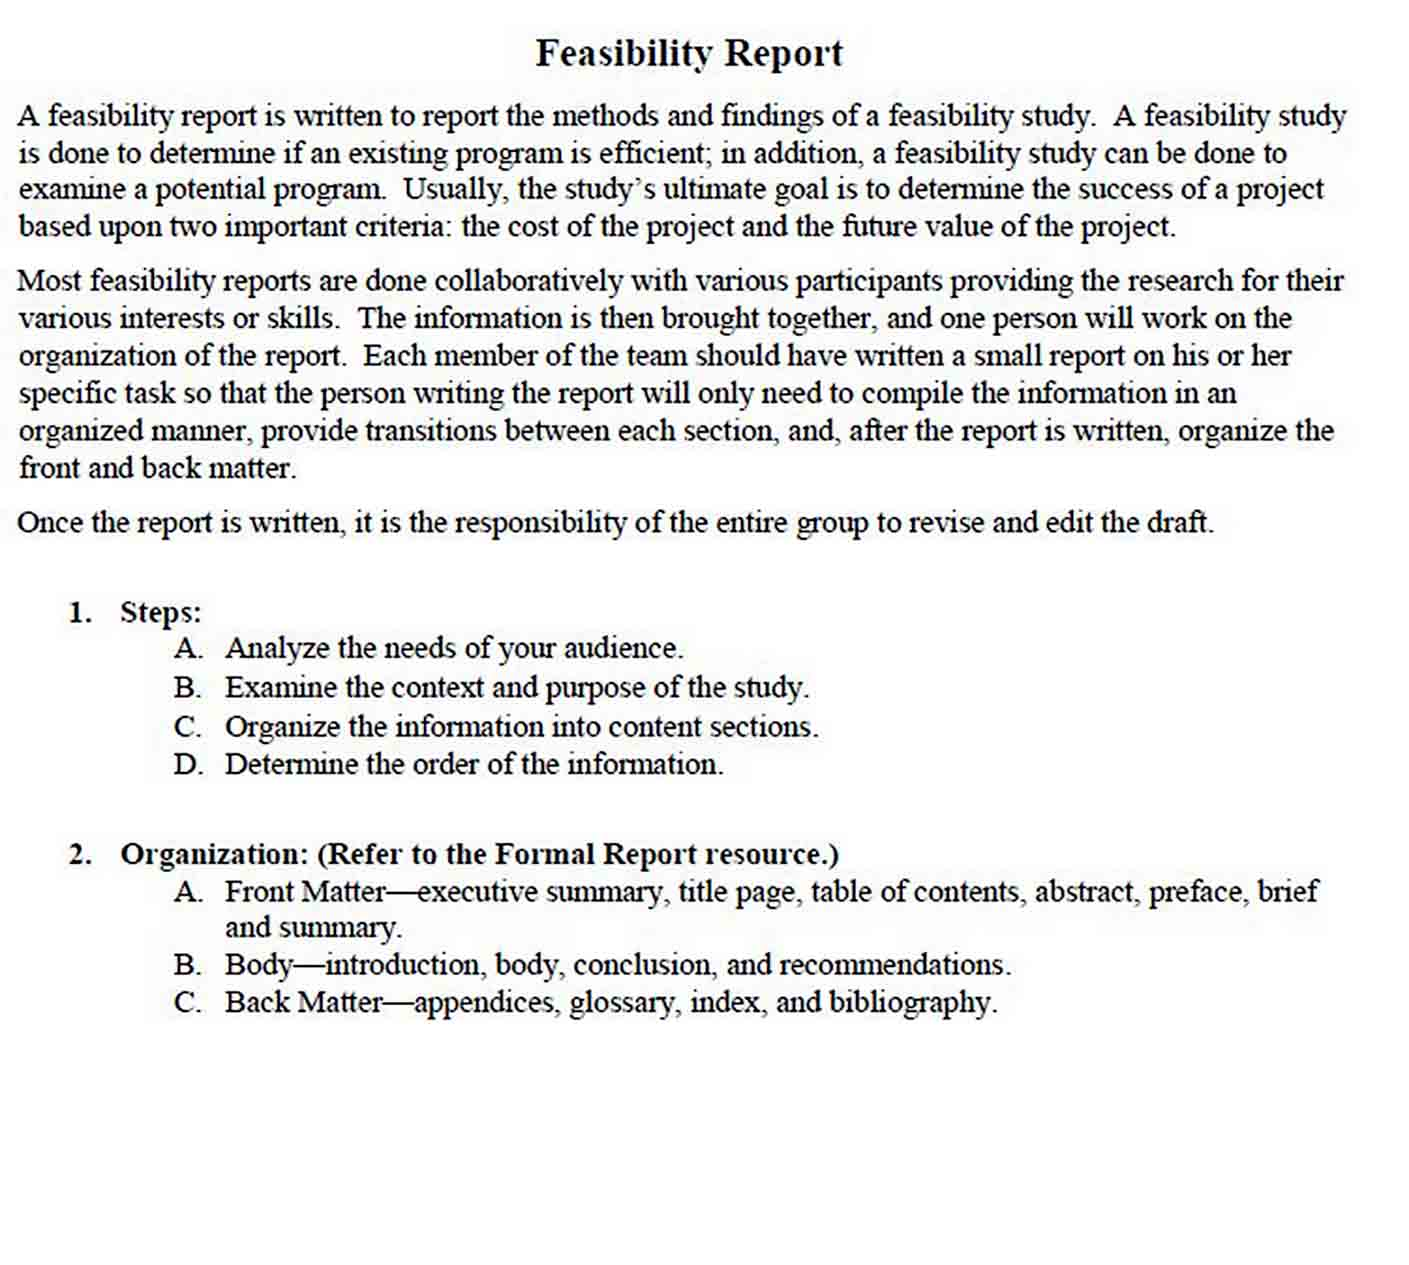 Feasibility Report Template sample